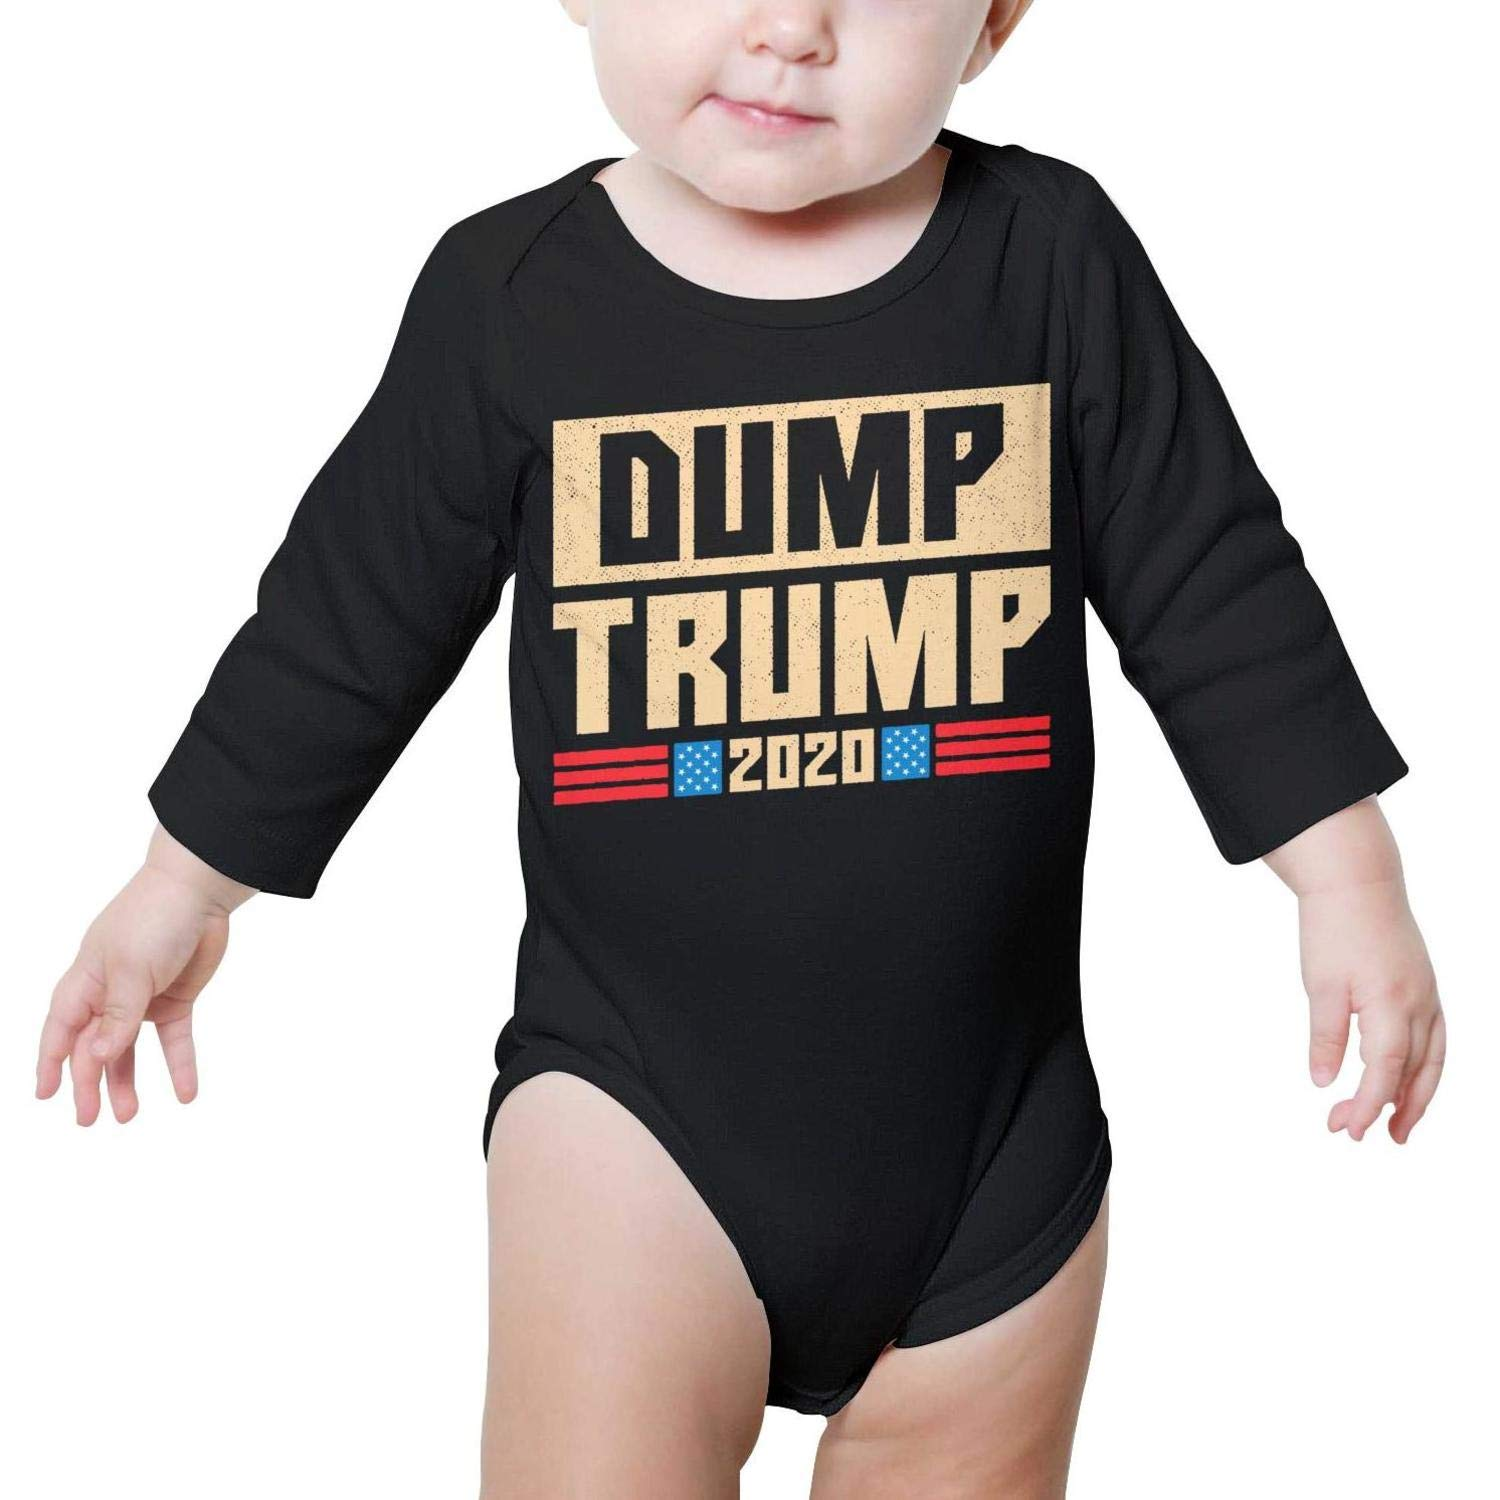 PoPBelle Dump Trump 2020 Funny Retro Baby Onesie Clothing Long Sleeve Natural Organic Cotton Unisex